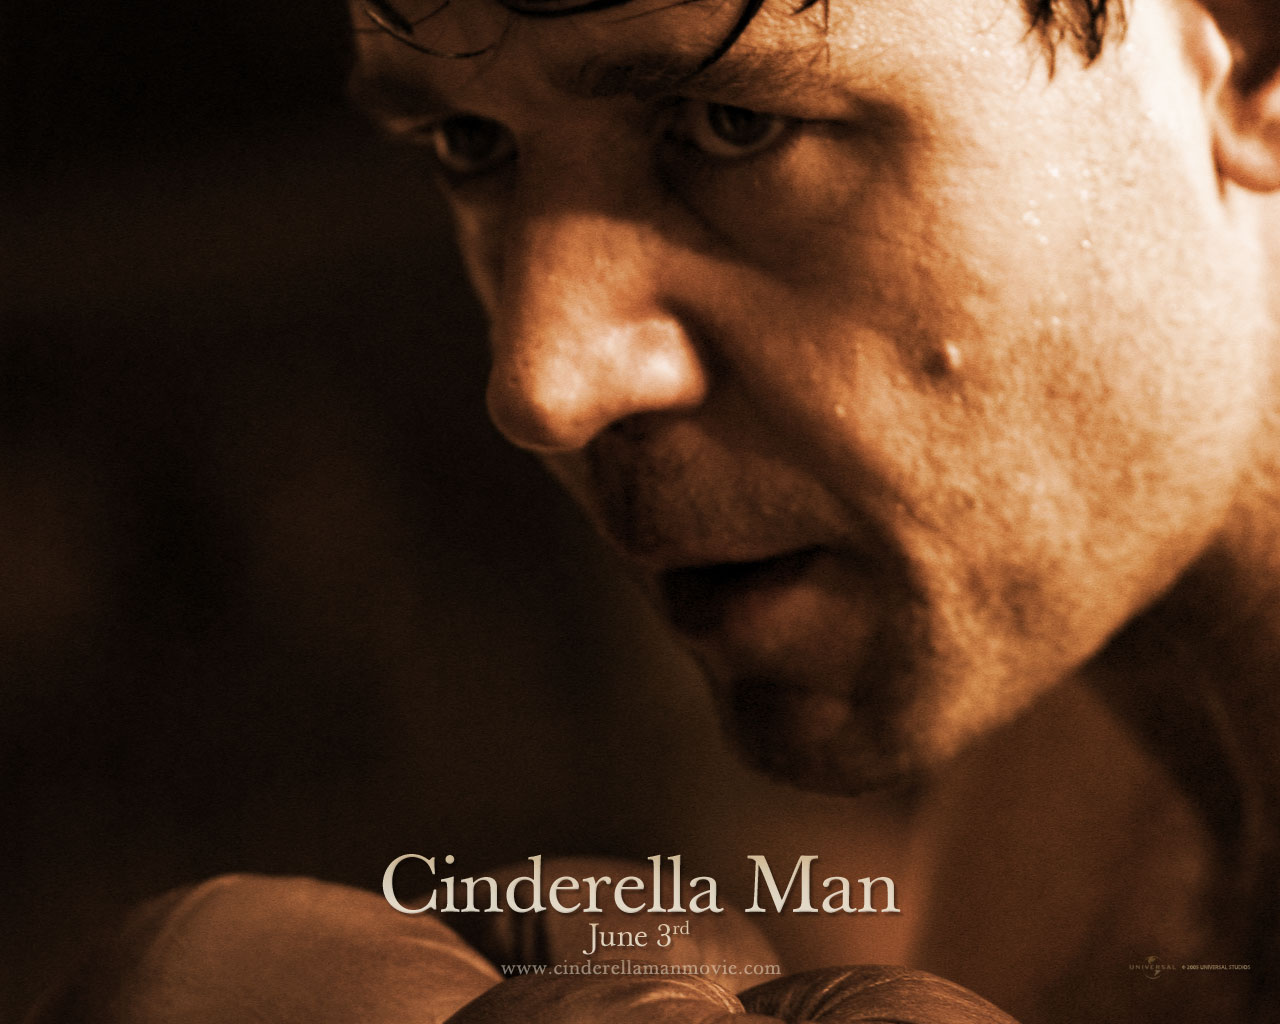 cinderella man great depression Cinderella man did an excellent job capturing braddock's character during this     (accessed 30.